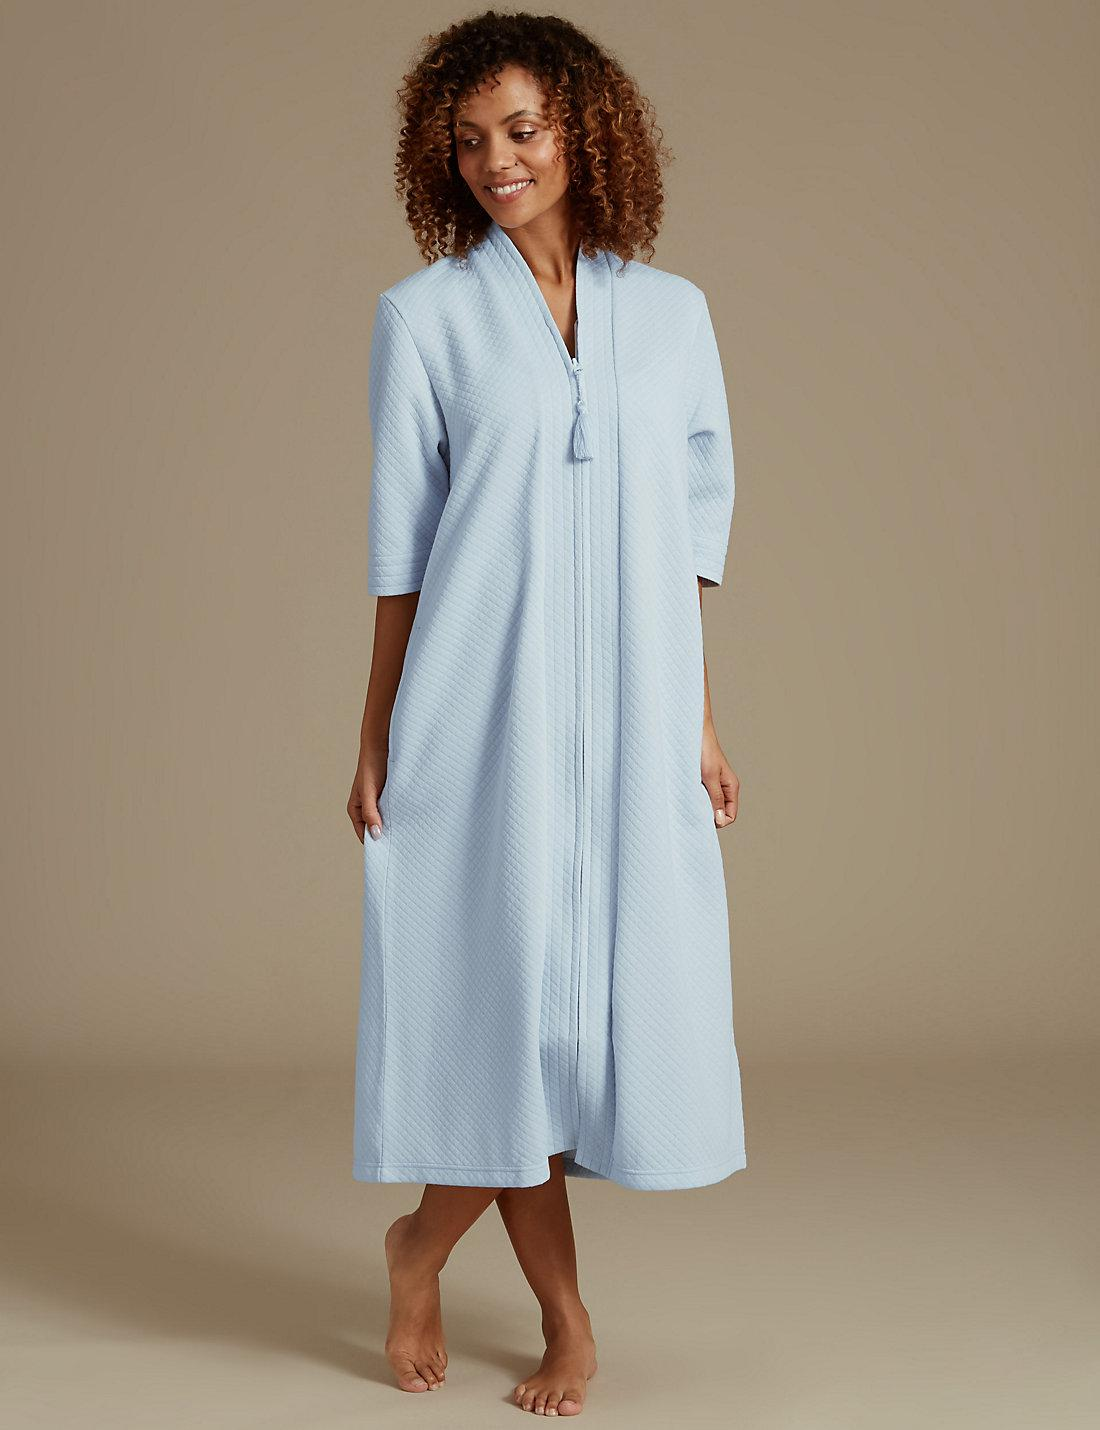 Lyst - Marks   Spencer Quilted Zip Through Dressing Gown in Blue e76e8461c